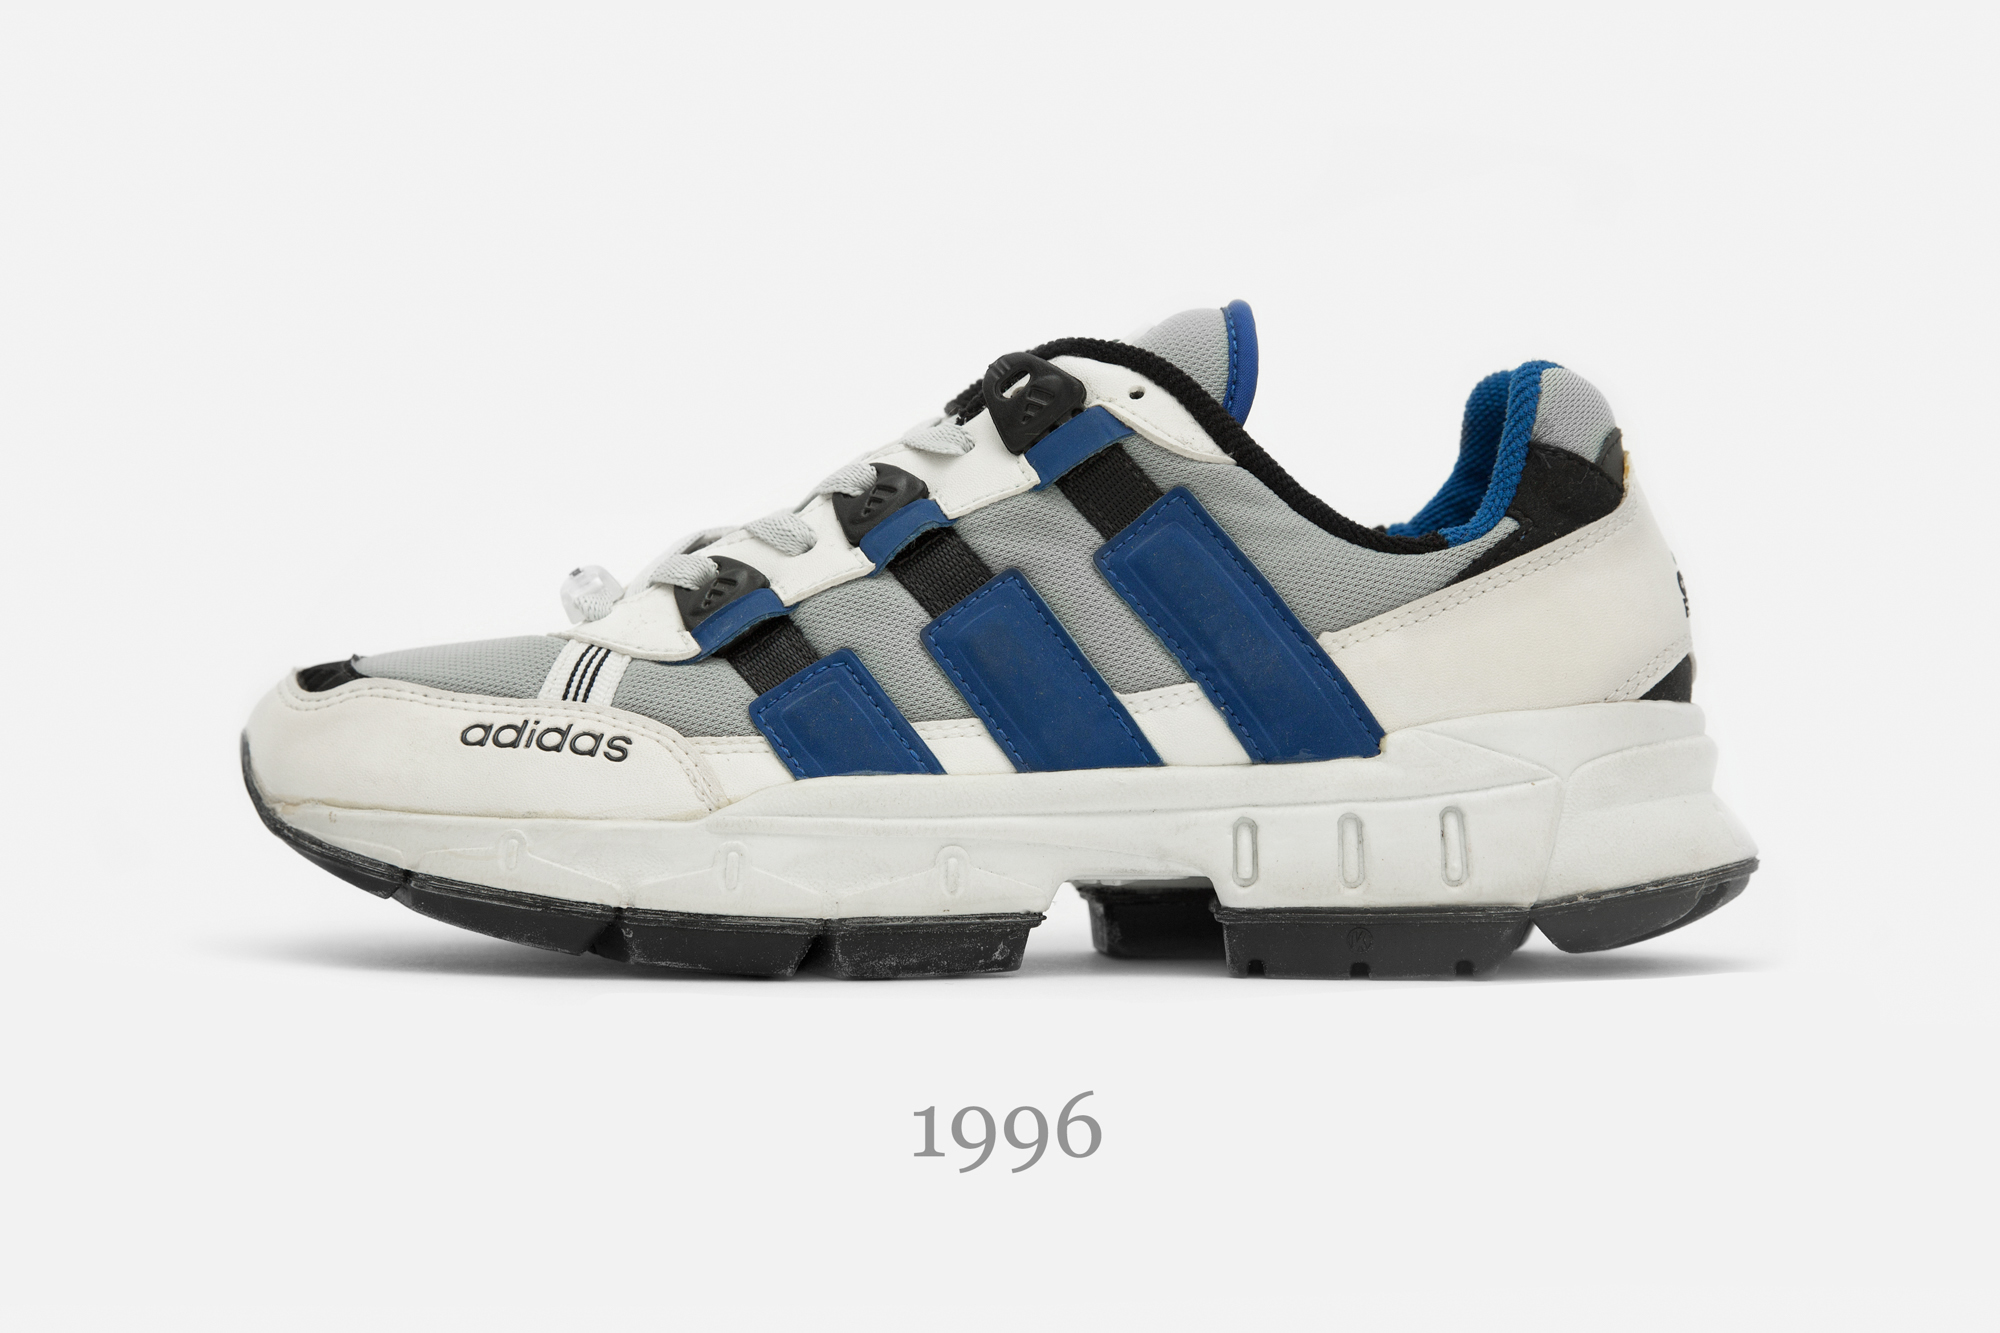 adidas_EQT_Equipment_Lock_up_size_hq_exclusive-1